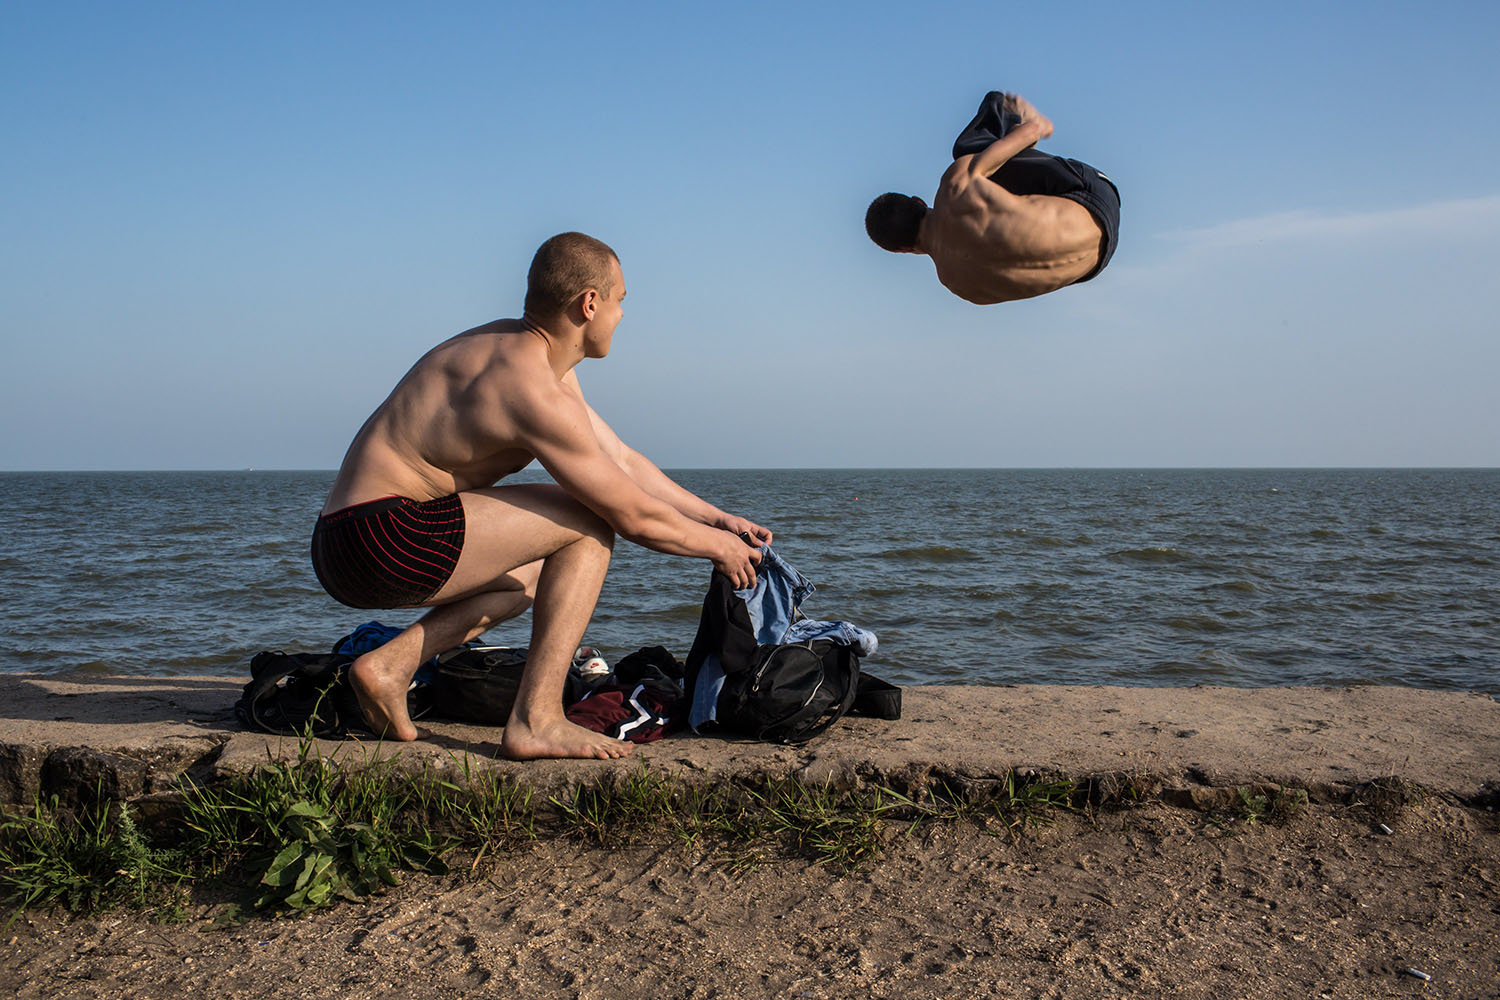 Men practice parkour on the beach in Mariupol, Ukraine, on May 18, 2014.